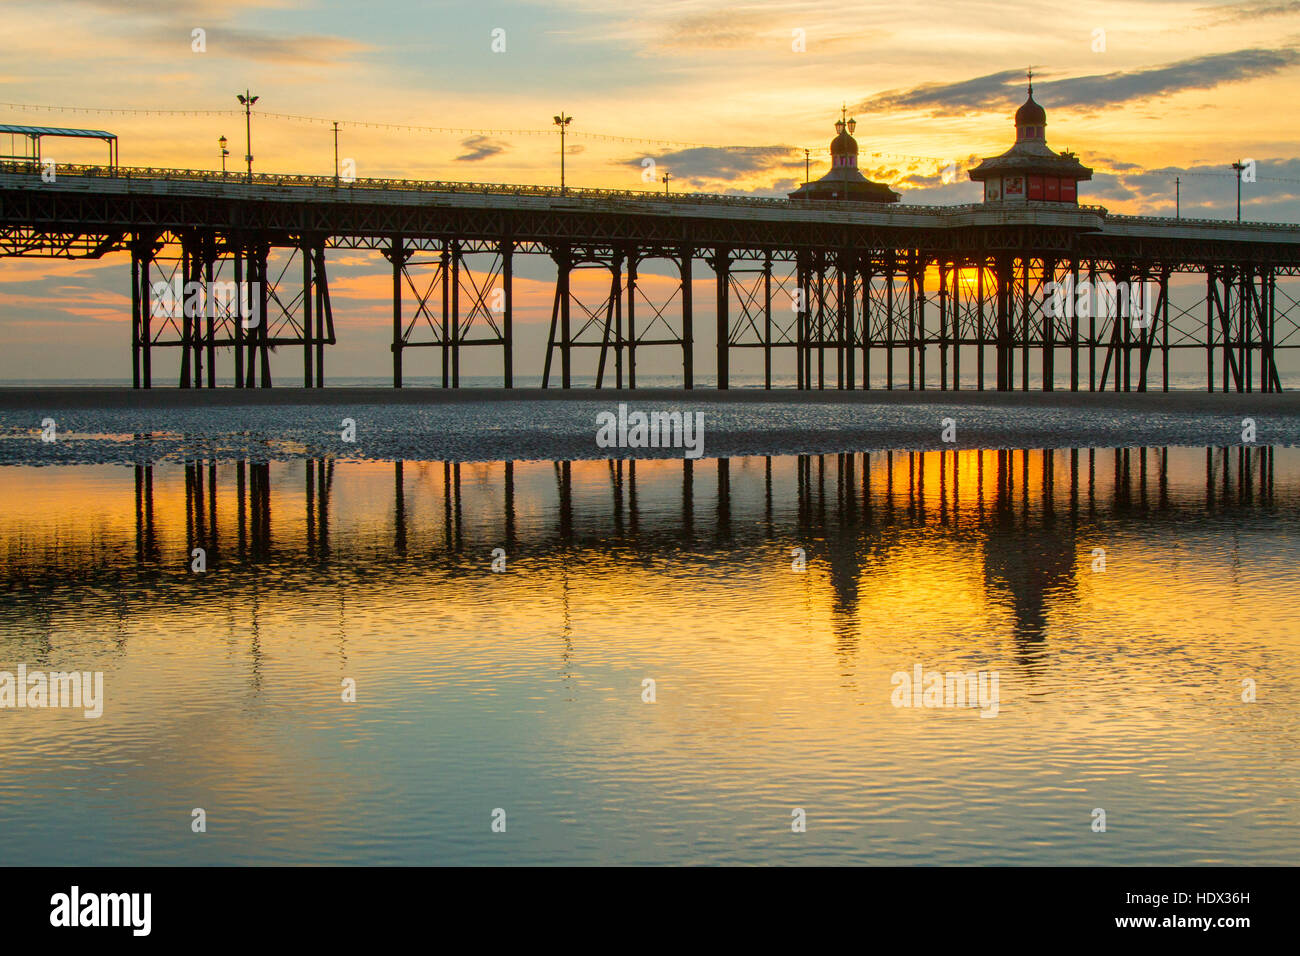 Blackpool, Lancashire, UK. 14th Dec, 2016. UK Weather: Sunset over Blackpool, Lancashire: 14th Dec 2016. - Stock Image